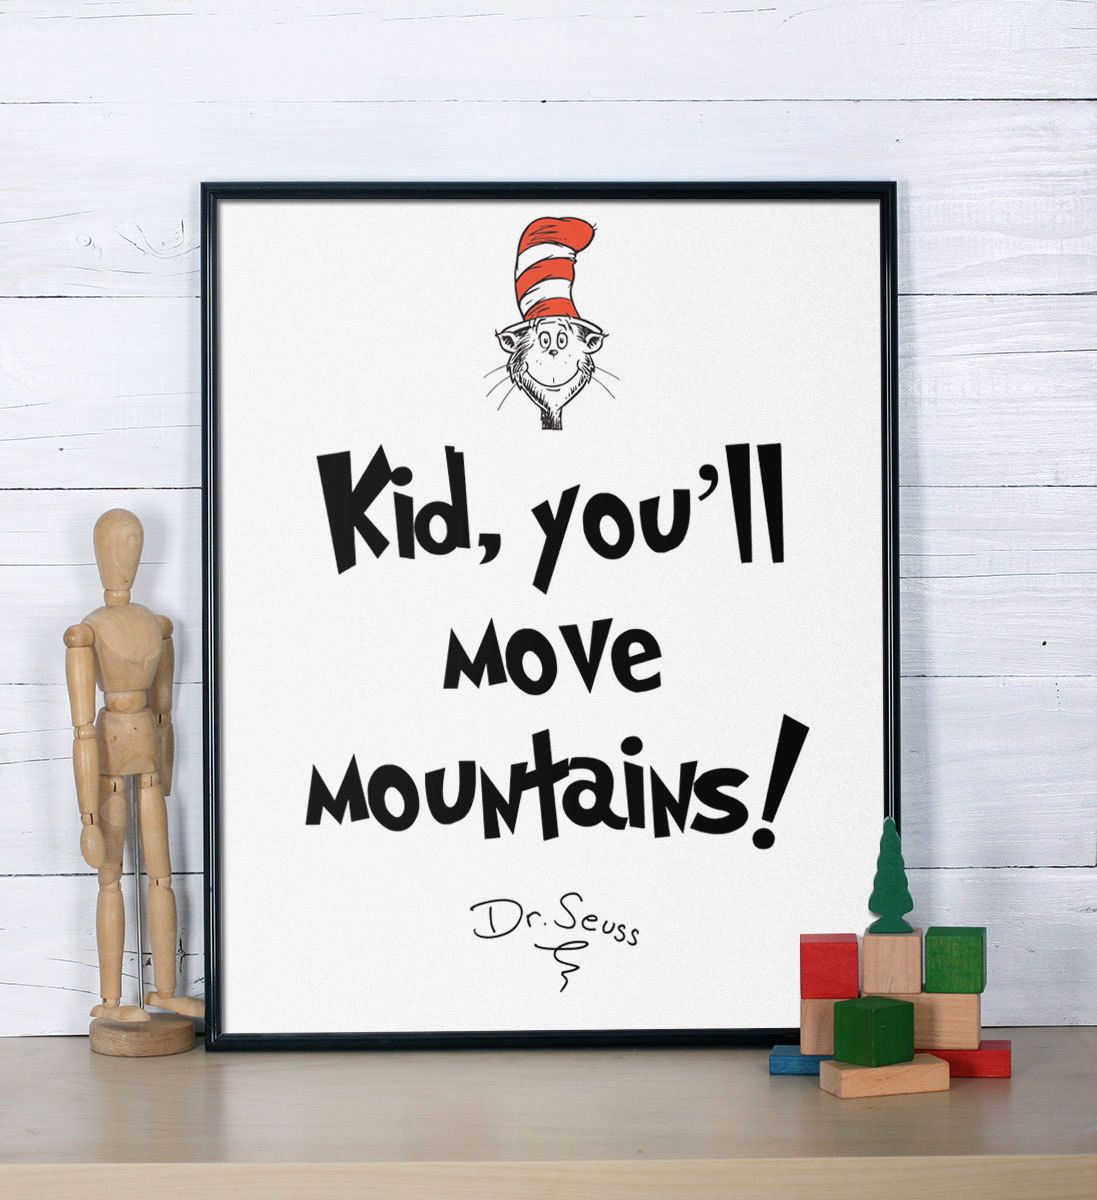 Dr Seuss Quote, Kid, You'll Move Mountains, Inspirational quote, Dr Seuss print, Nursery print, Dr Seuss nursery poster by Inspire4you on Etsy https://www.etsy.com/listing/211658040/dr-seuss-quote-kid-youll-move-mountains